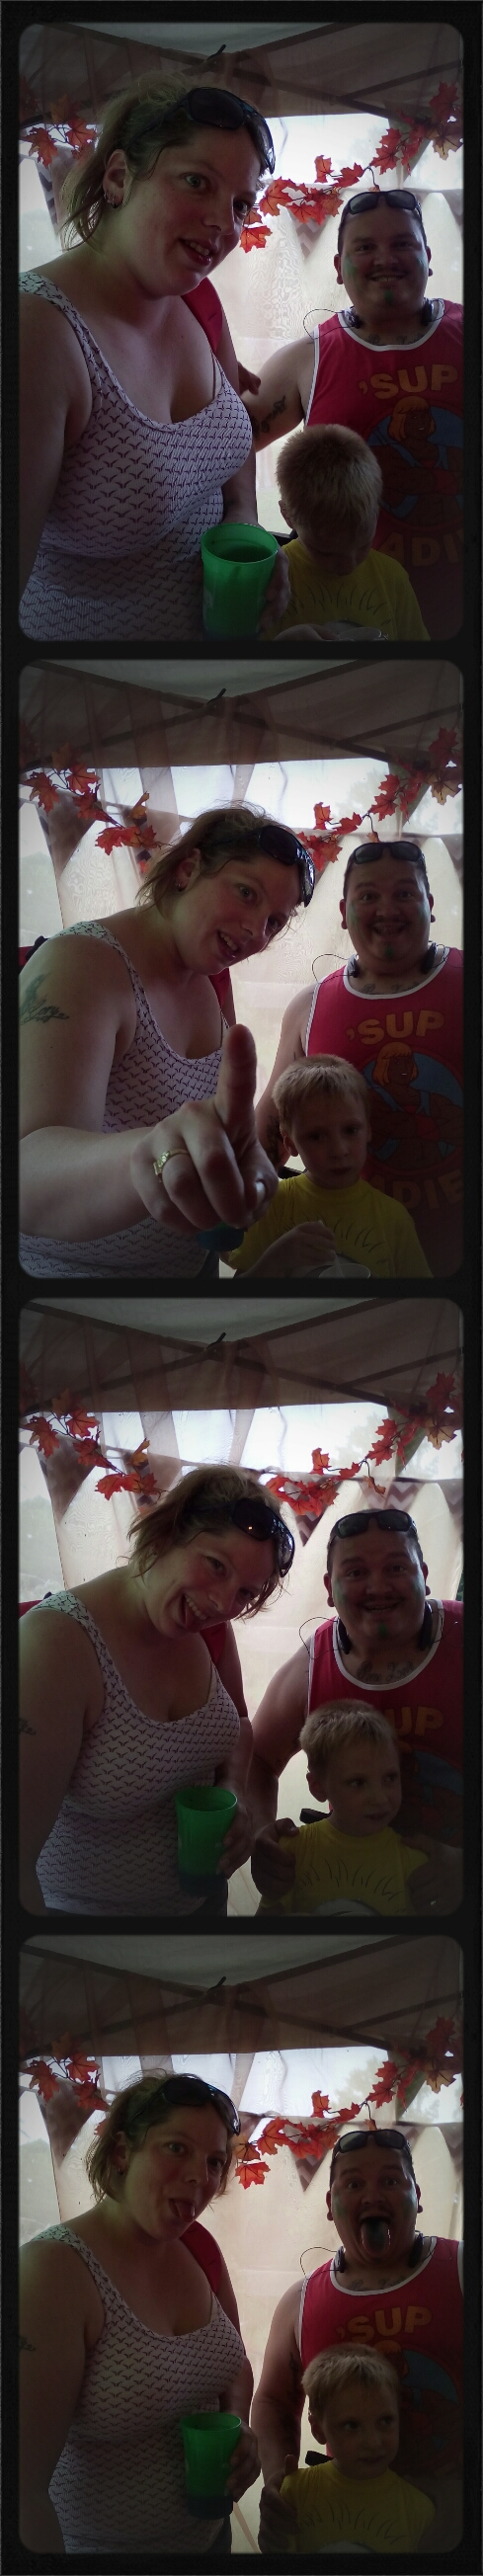 Pocketbooth_20150613121805